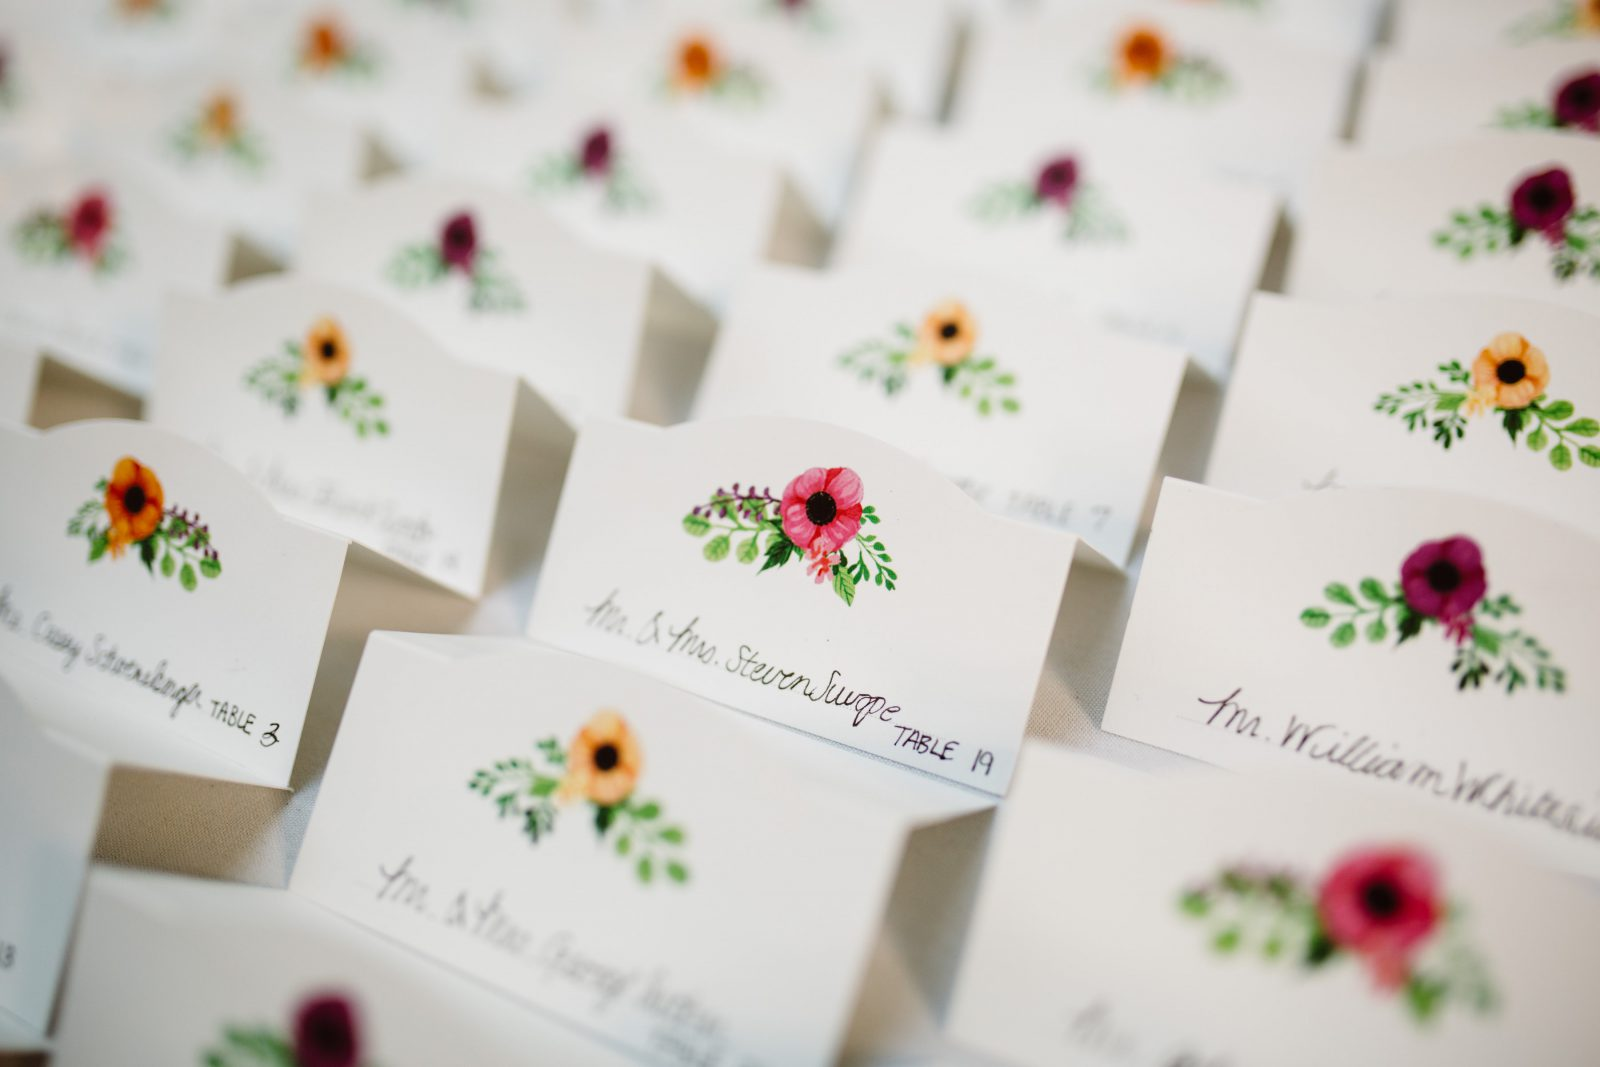 Floral Place Cards at Ridgeland Mansion Philadelphia Wedding. Photo by Ali & Paul Co.